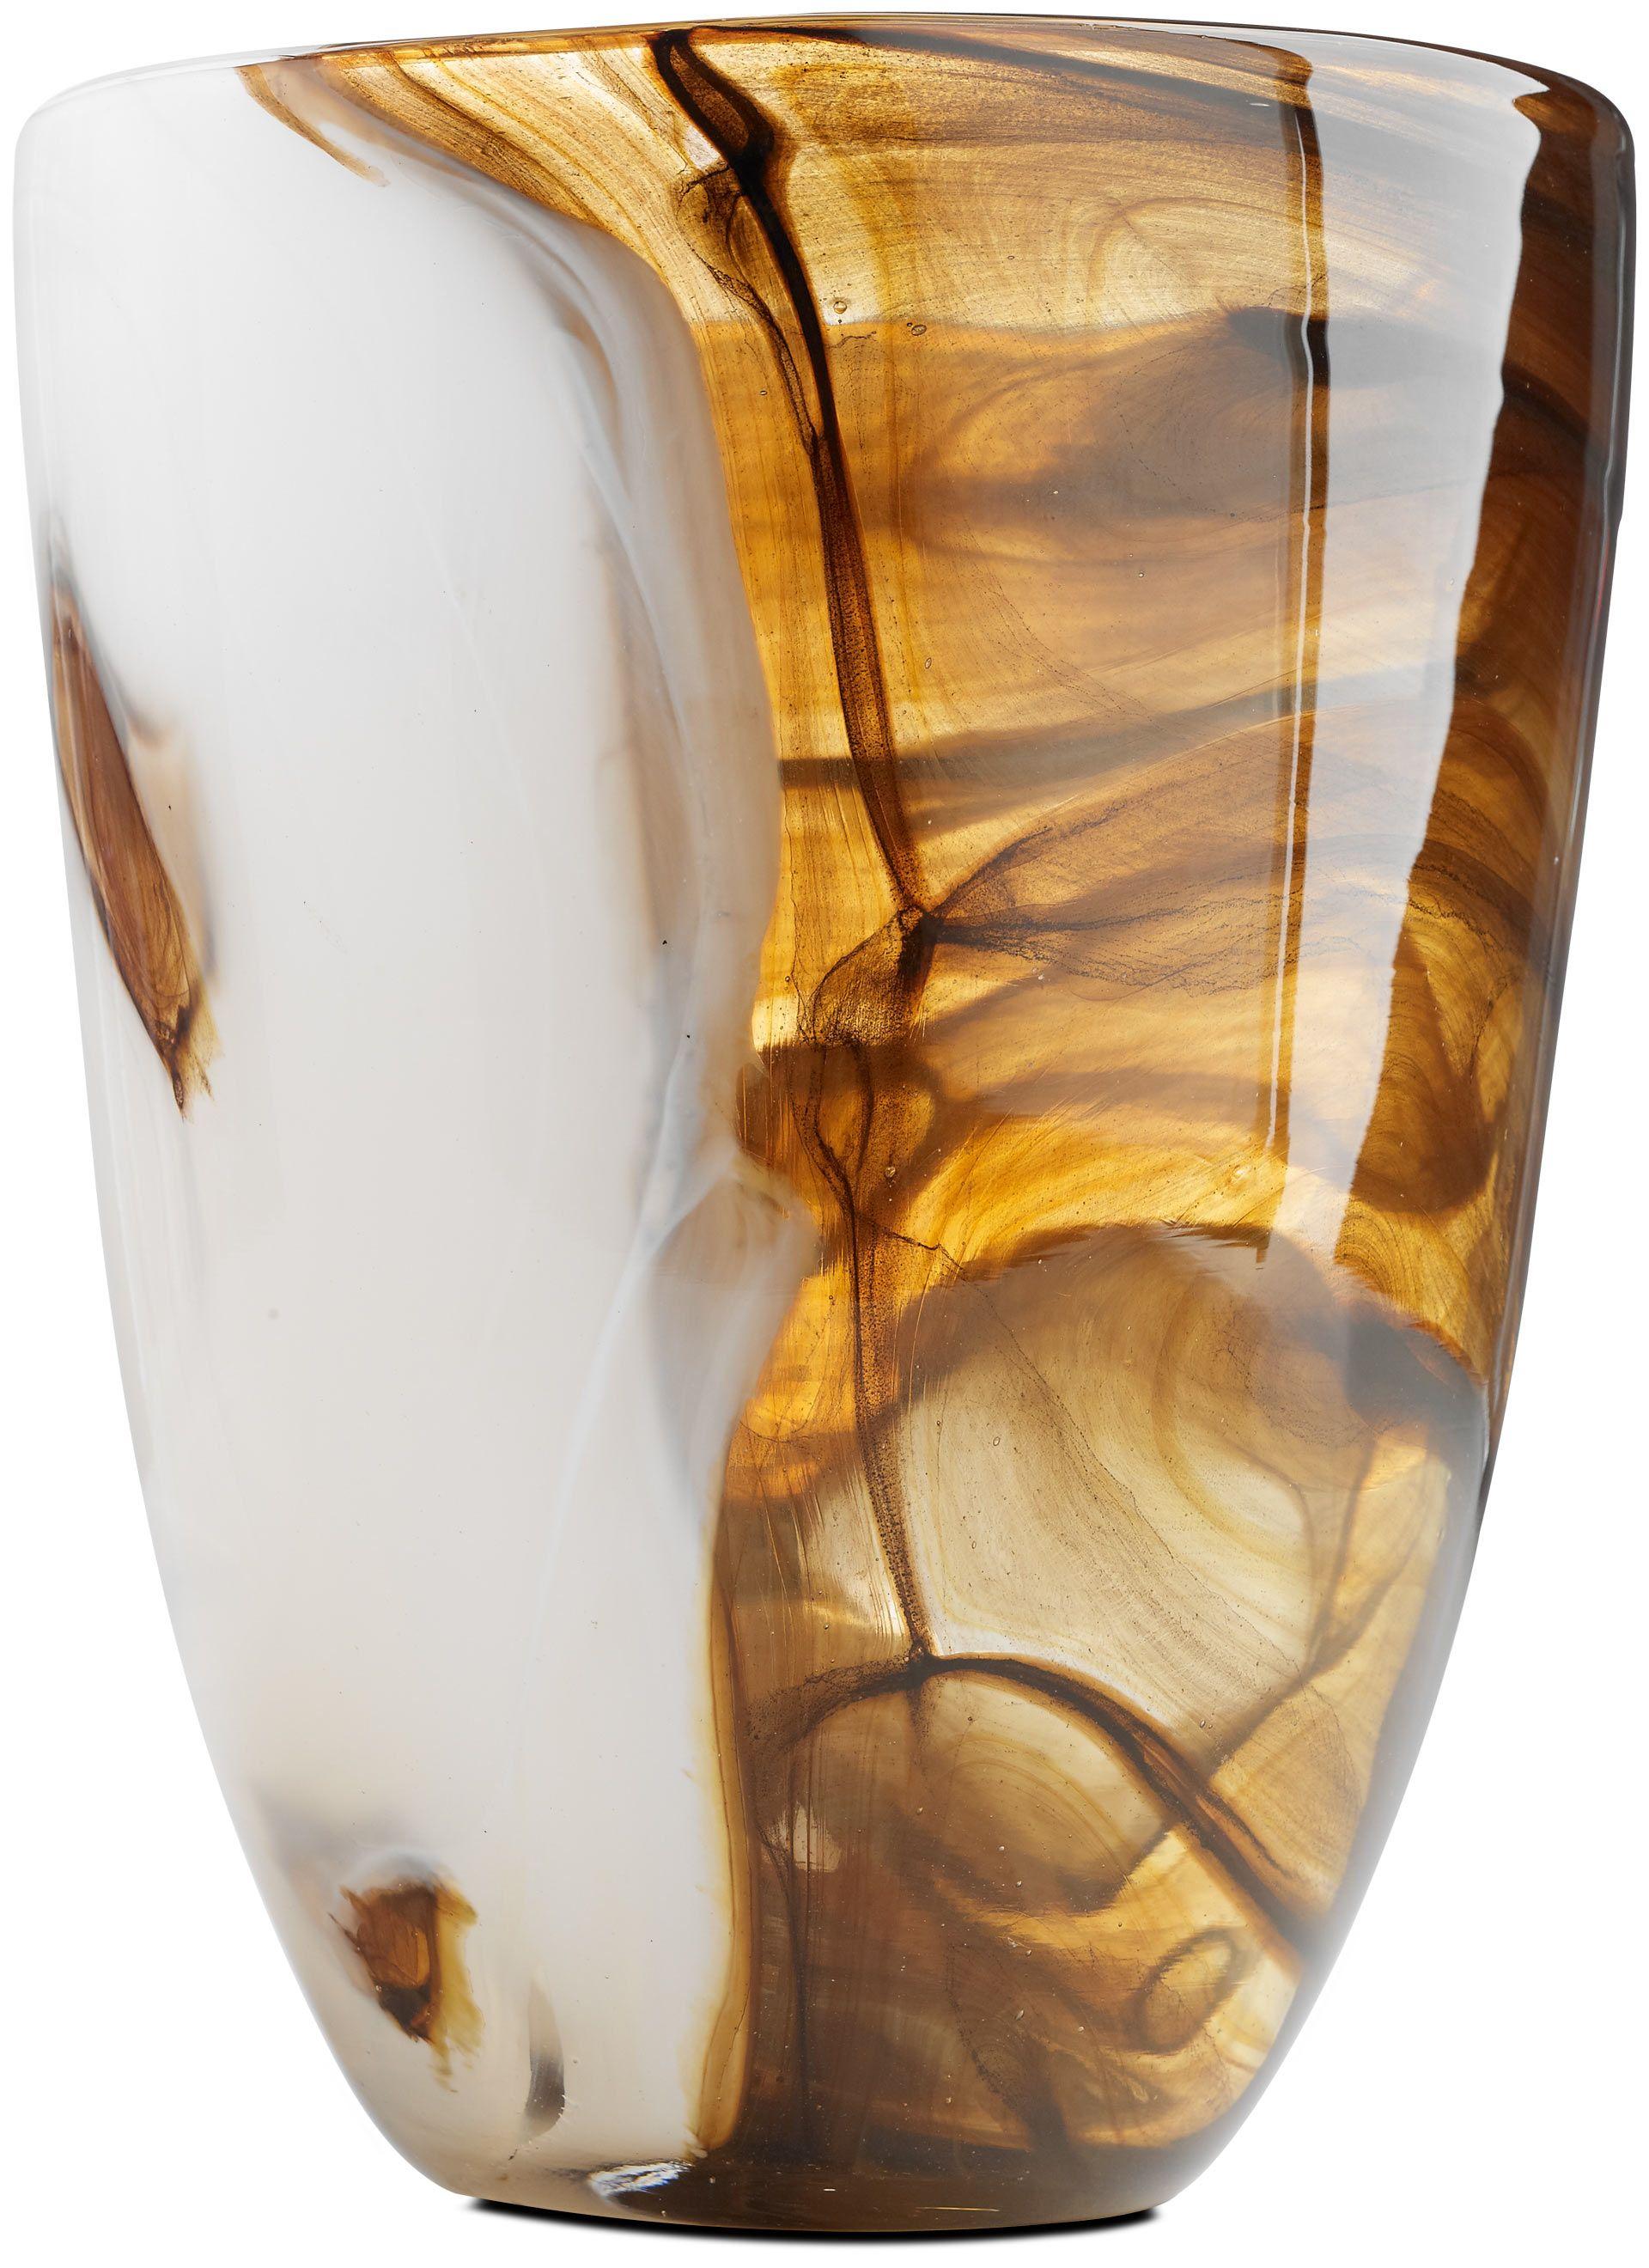 Modern vases contemporary vases boconcept glaasart modern vases contemporary vases boconcept floridaeventfo Image collections